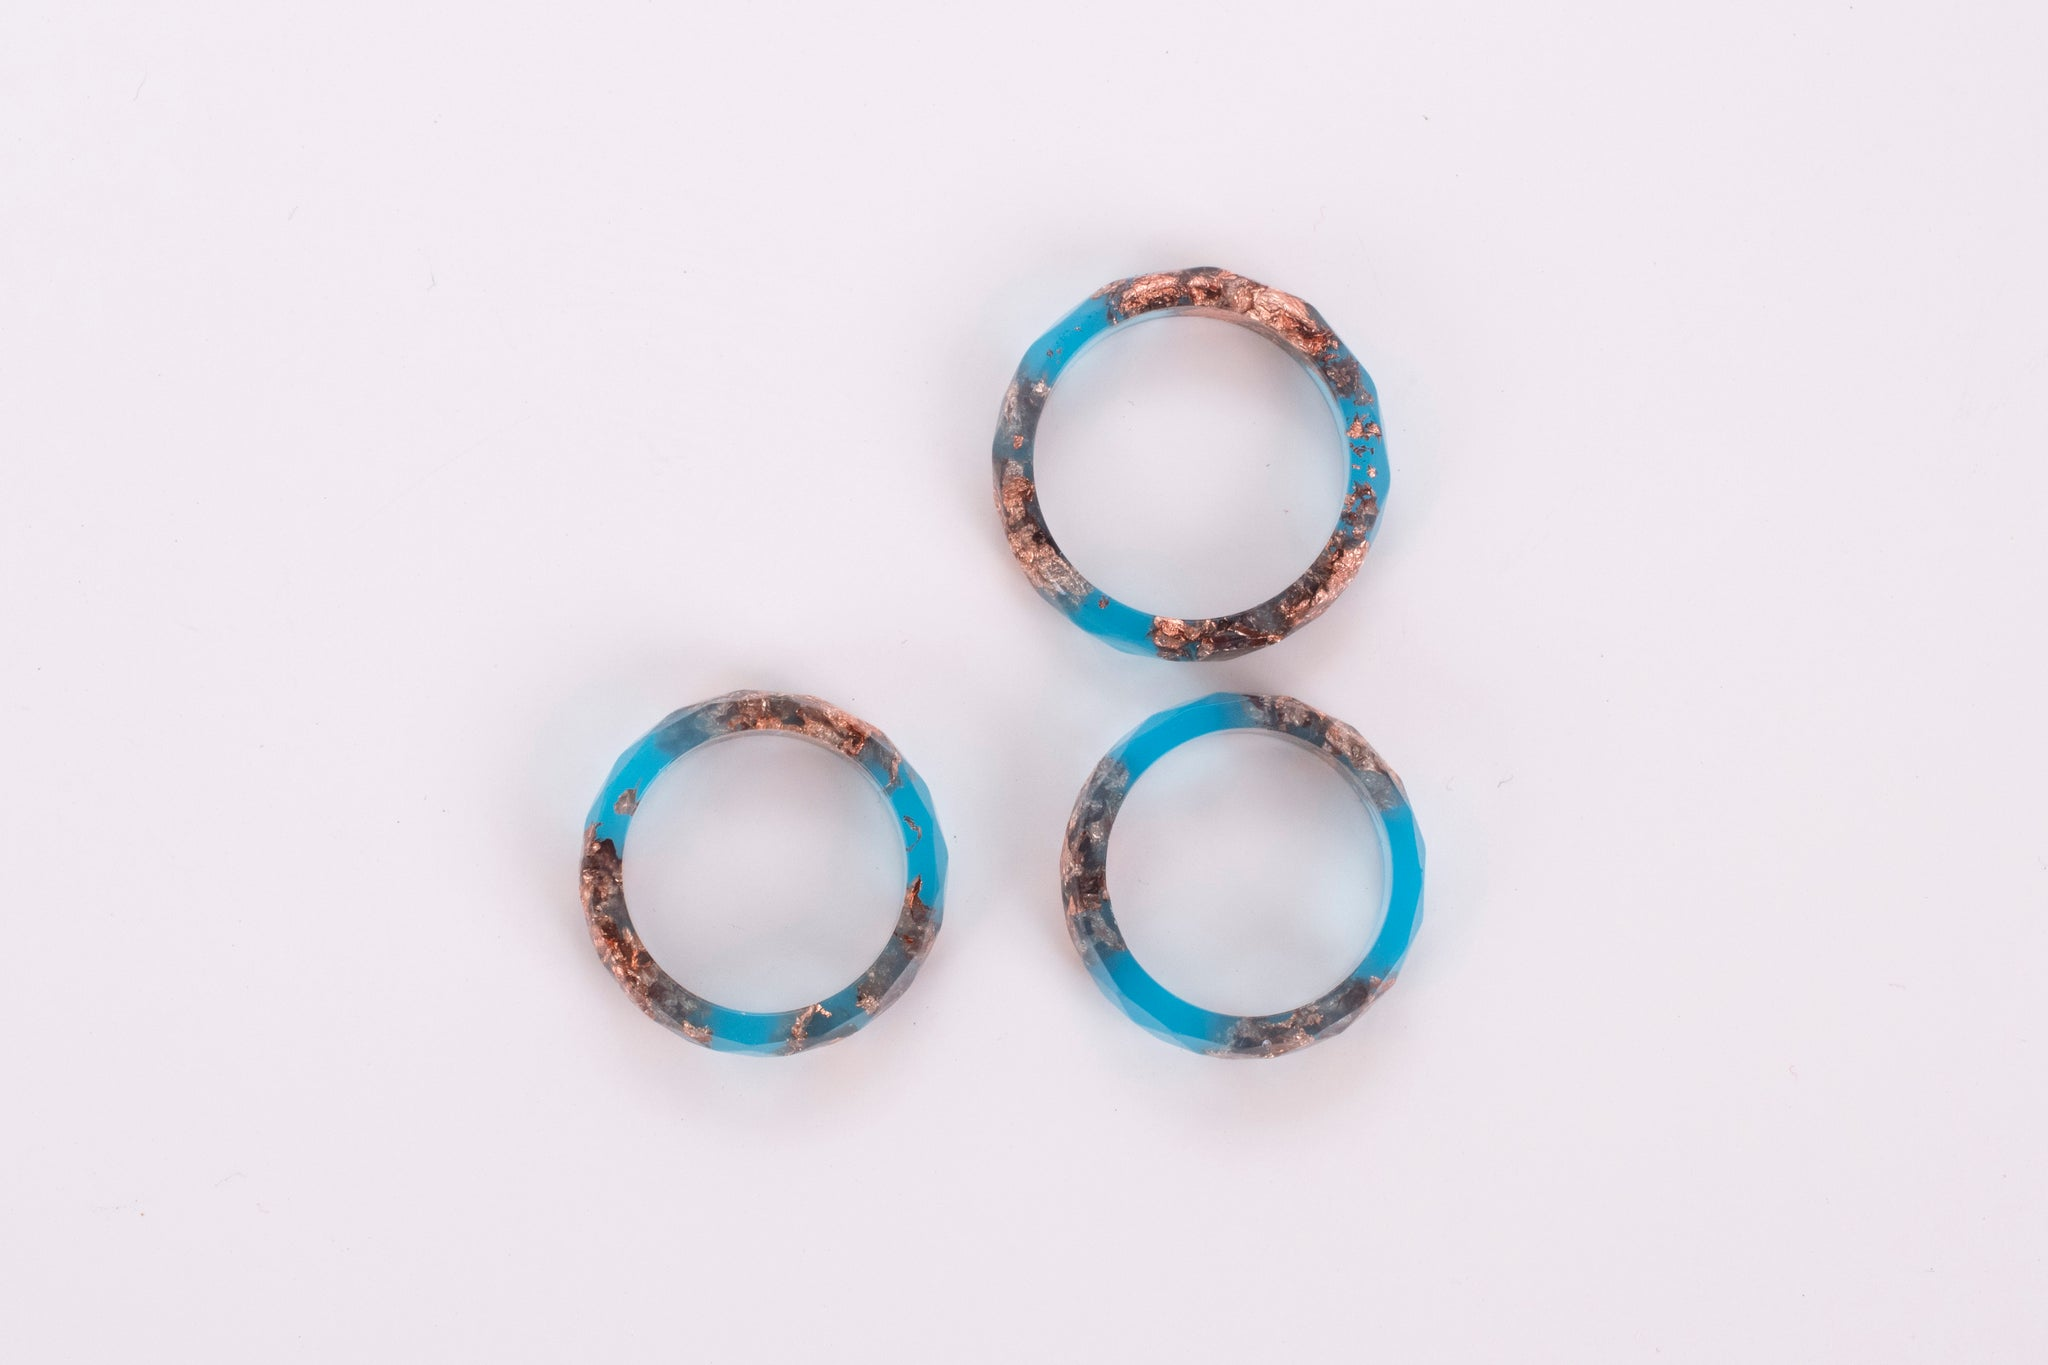 Blue Ring With Copper Flakes